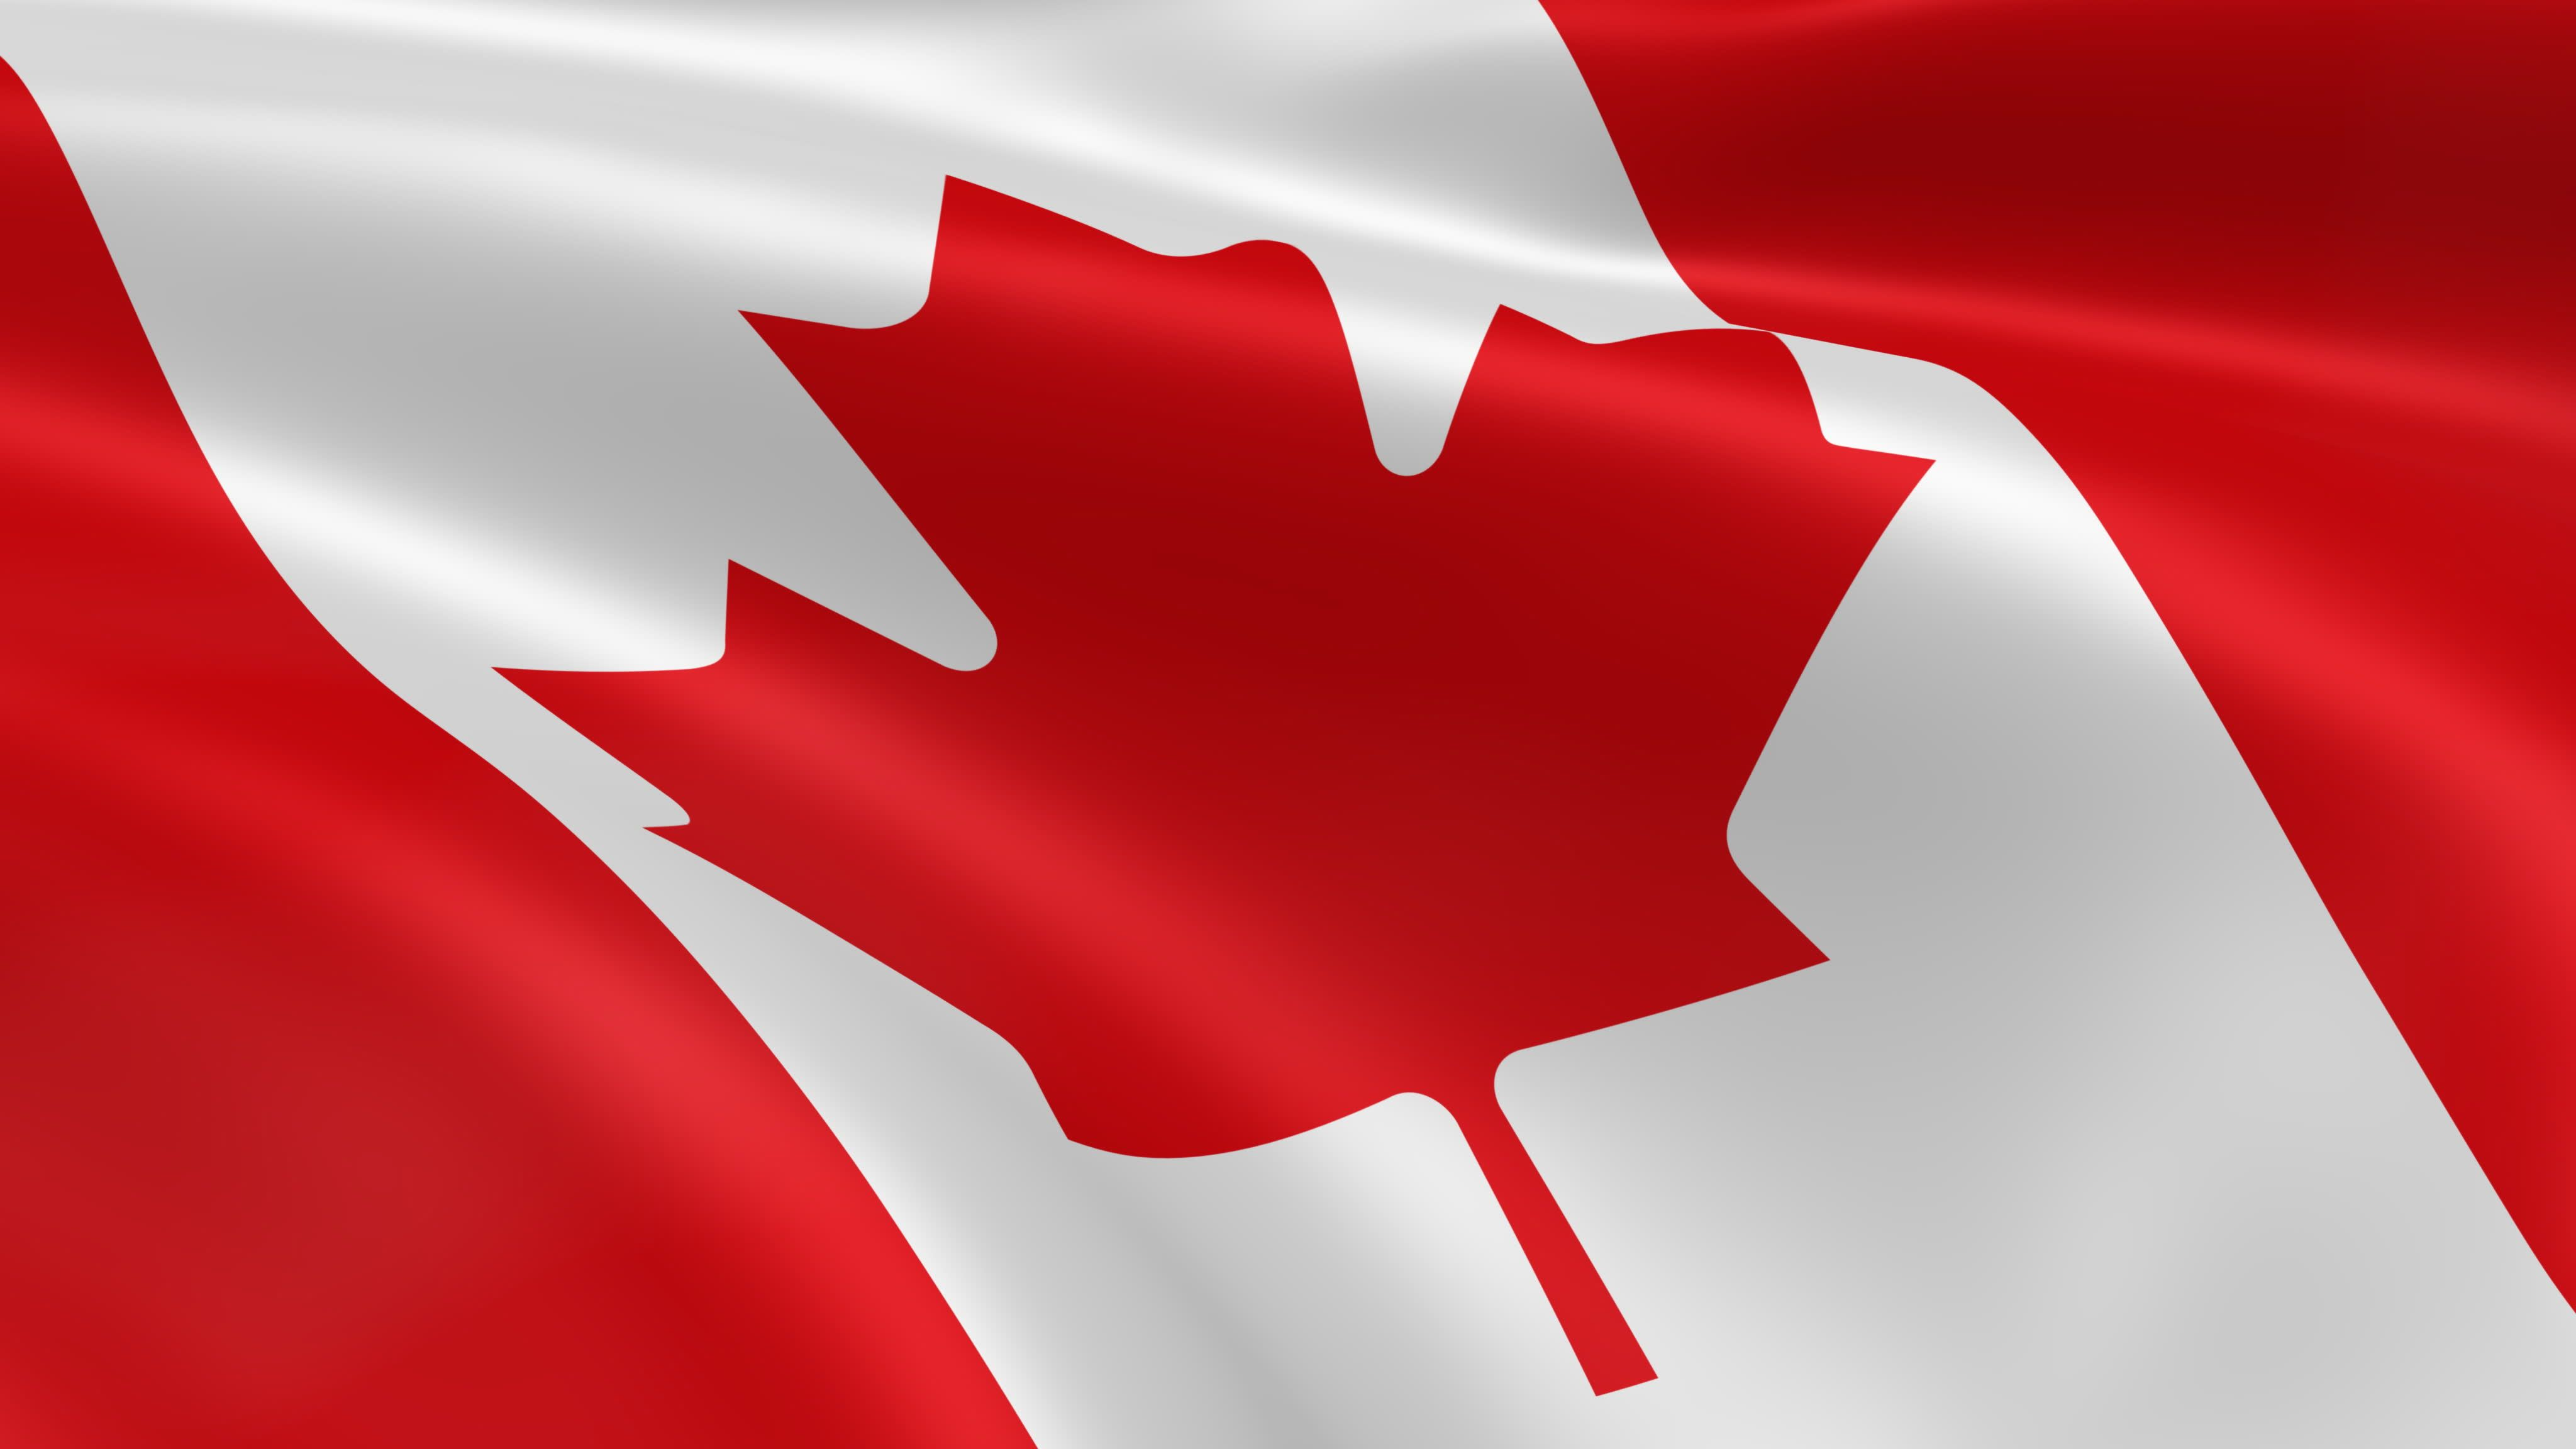 Canada flag hd wallpapers download free canada flag tumblr pinterest hd wallpapers things i - Canada flag image ...